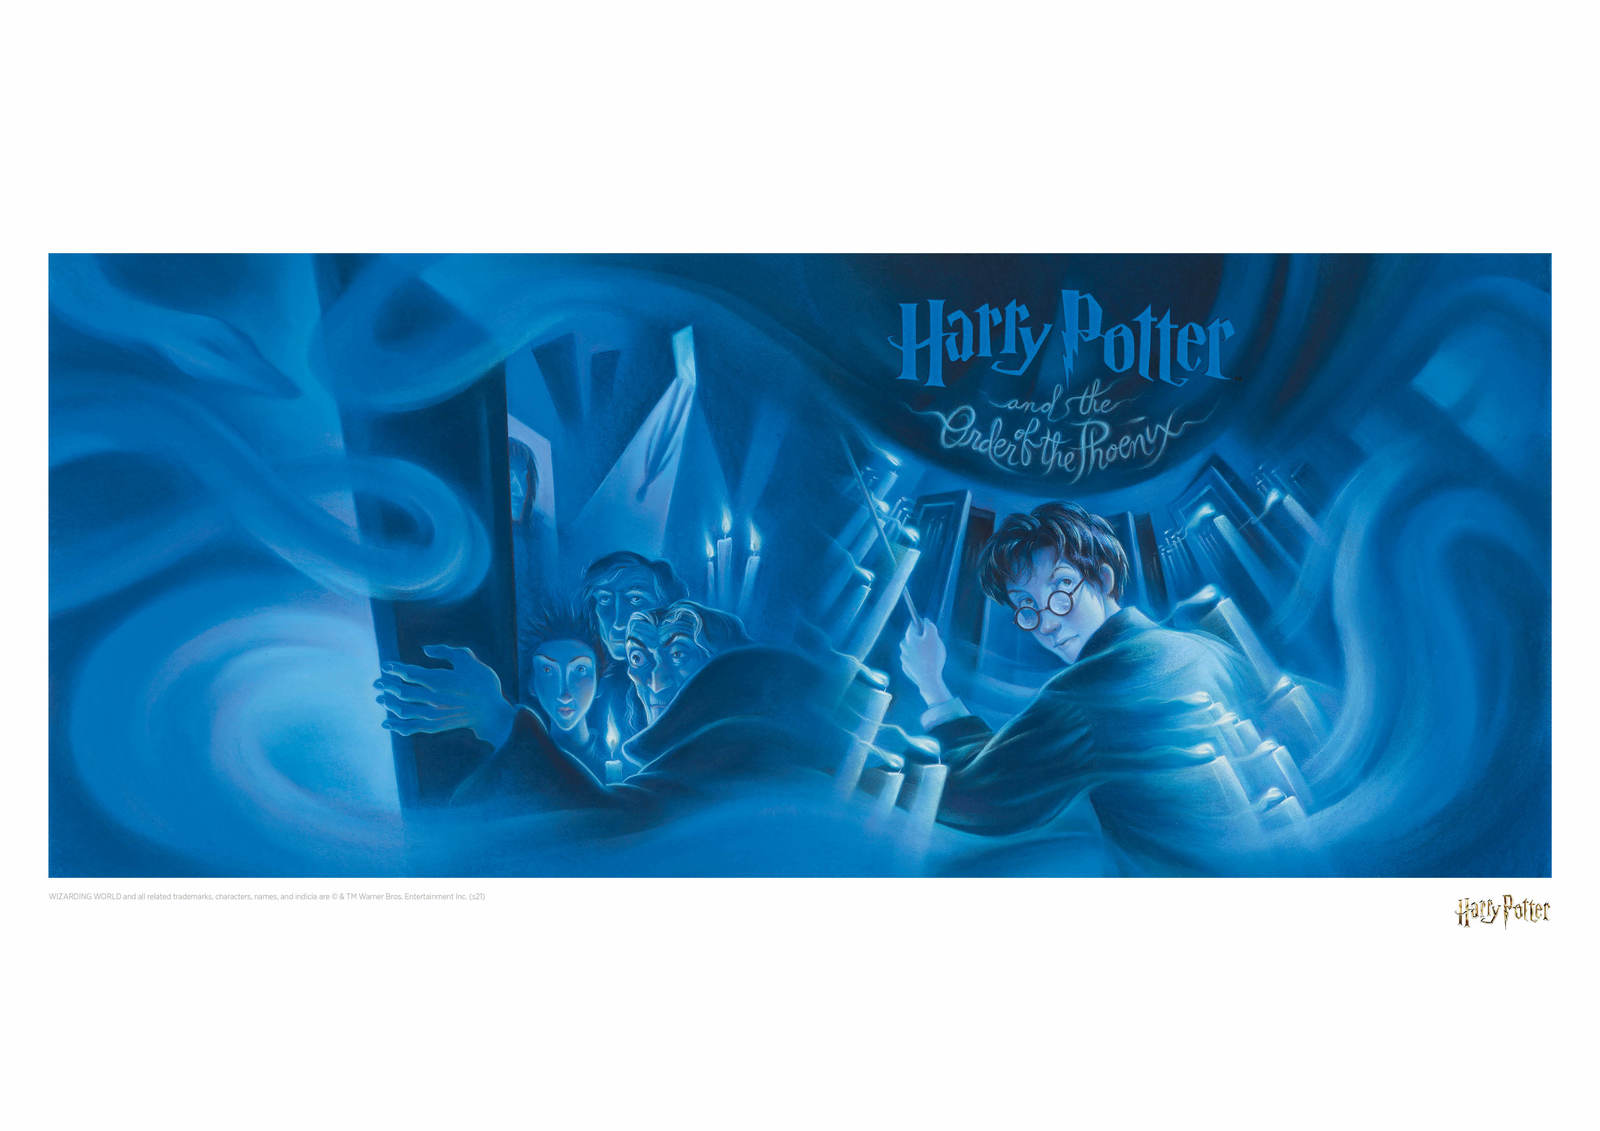 Harry Potter: Order of the Phoenix - Book Cover Artwork image